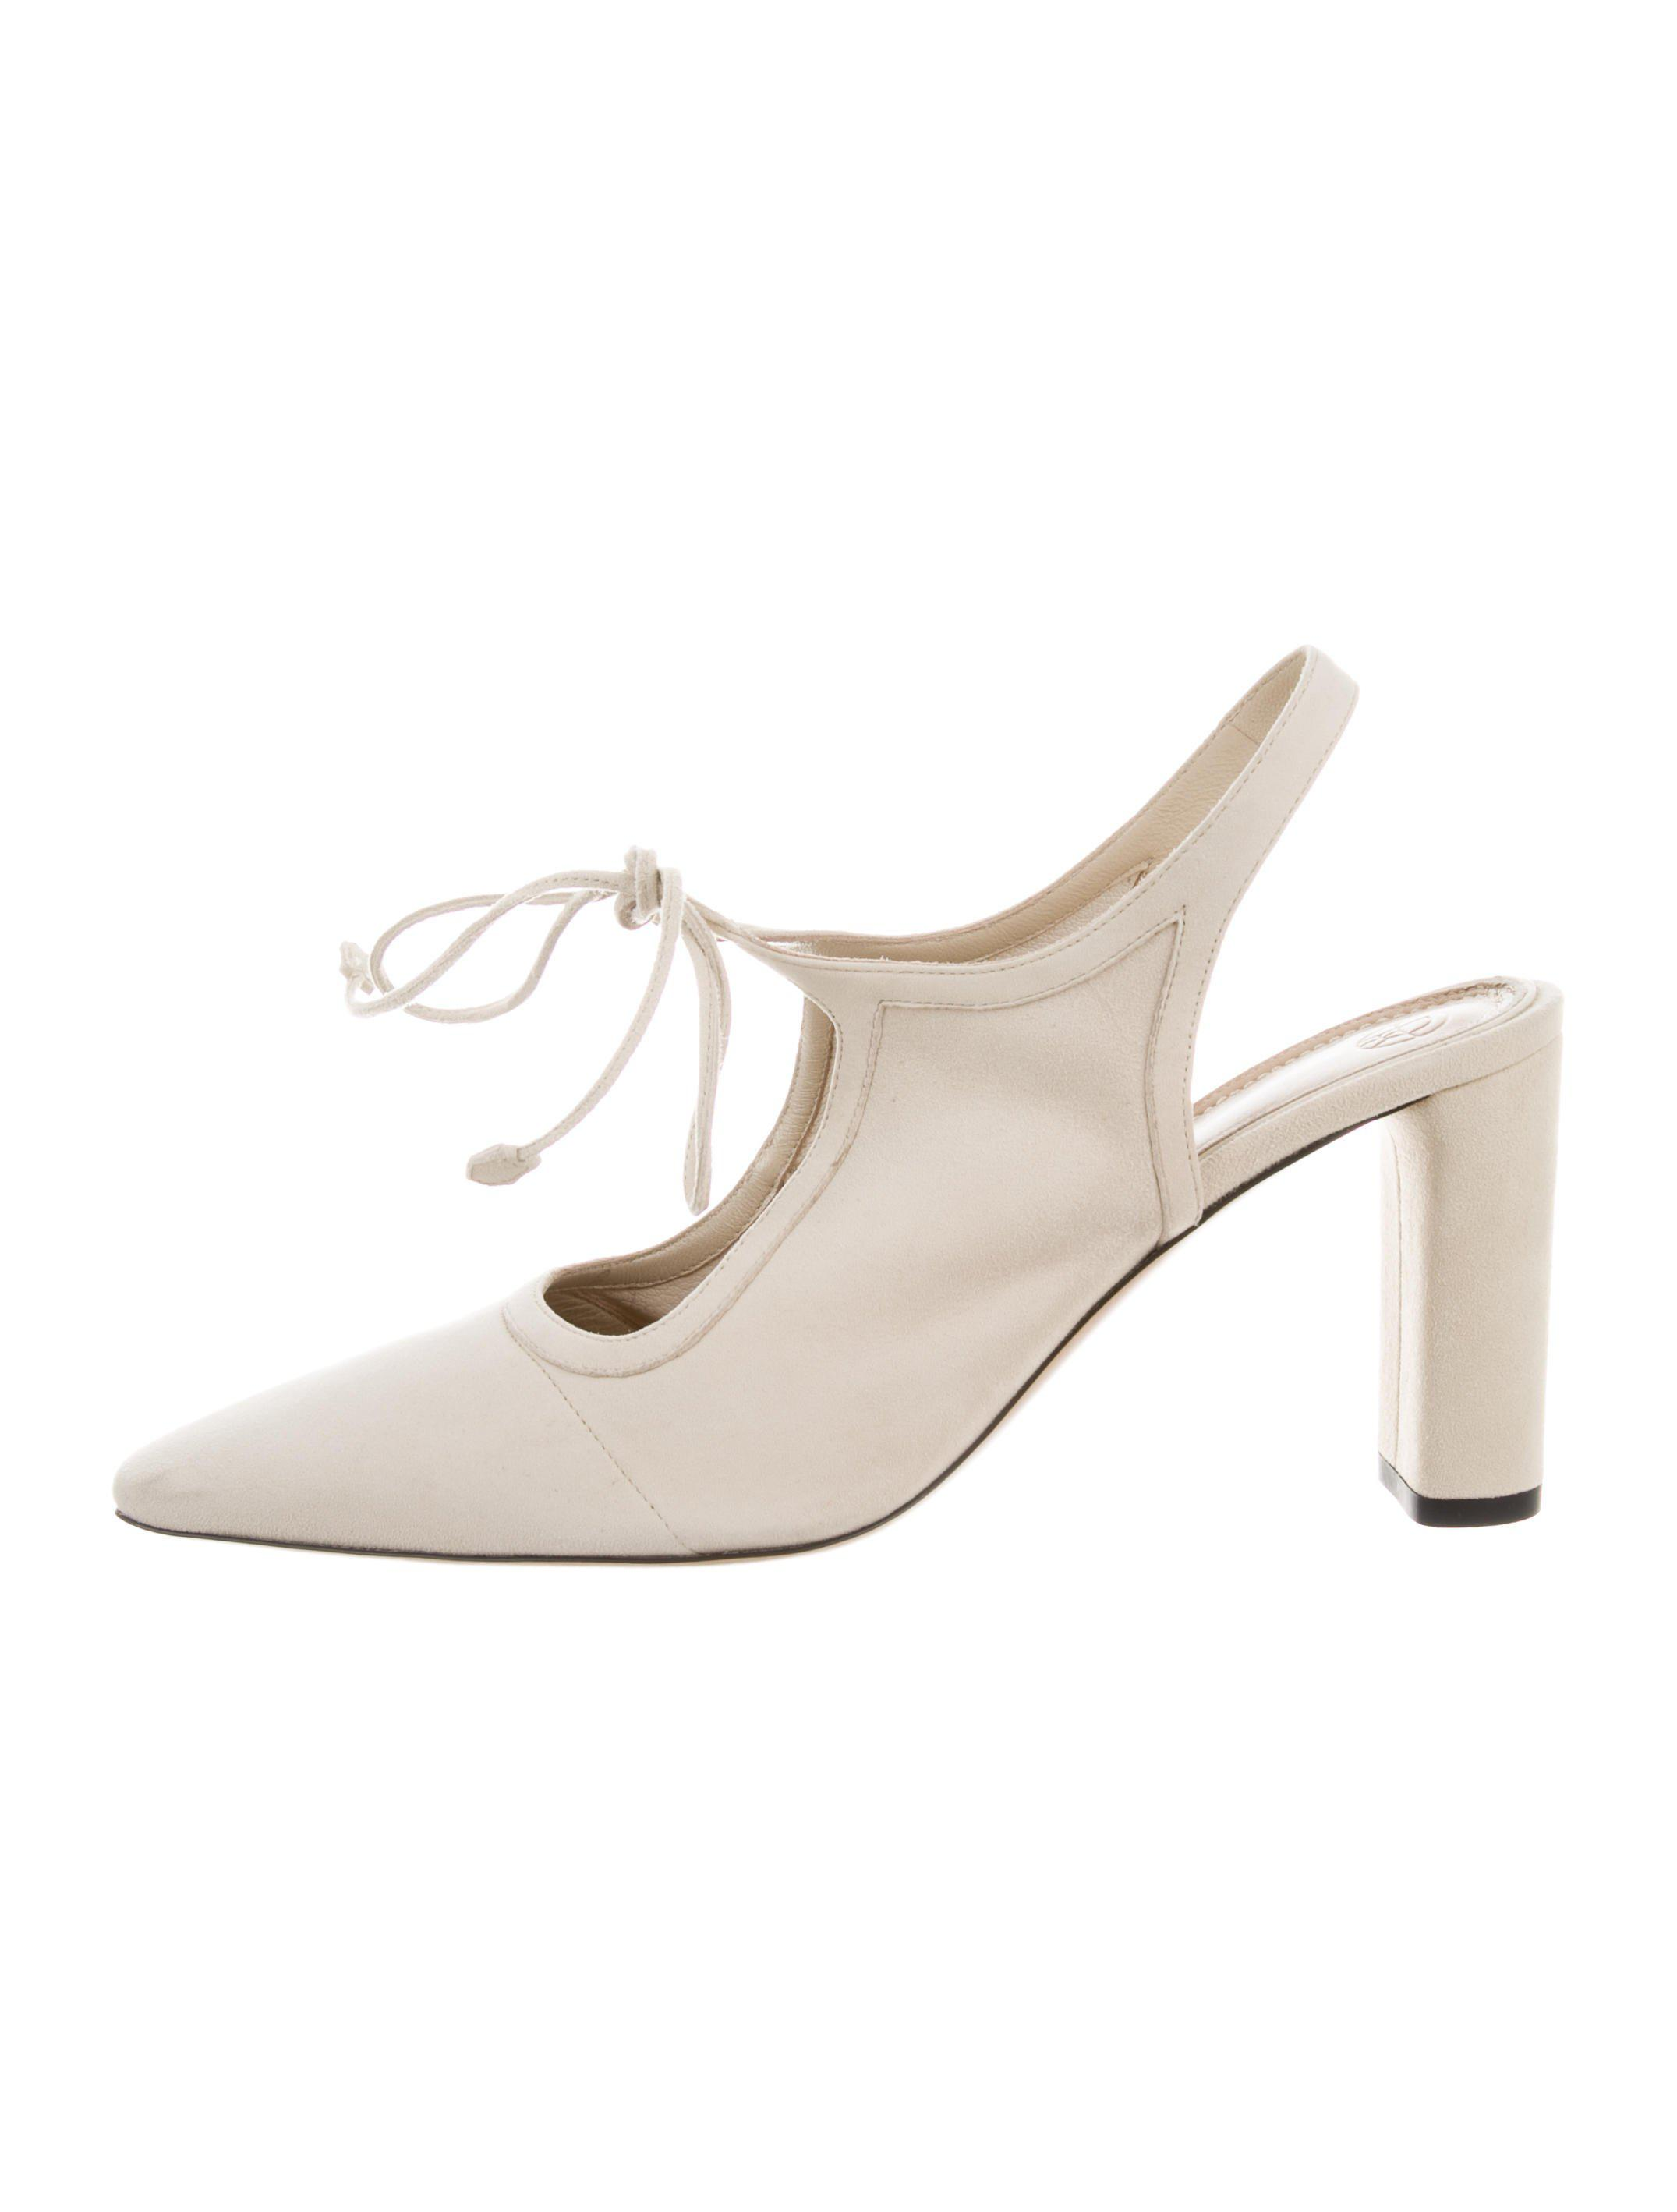 1368906981 Lyst - The Row Camil Suede Pumps Beige in Natural